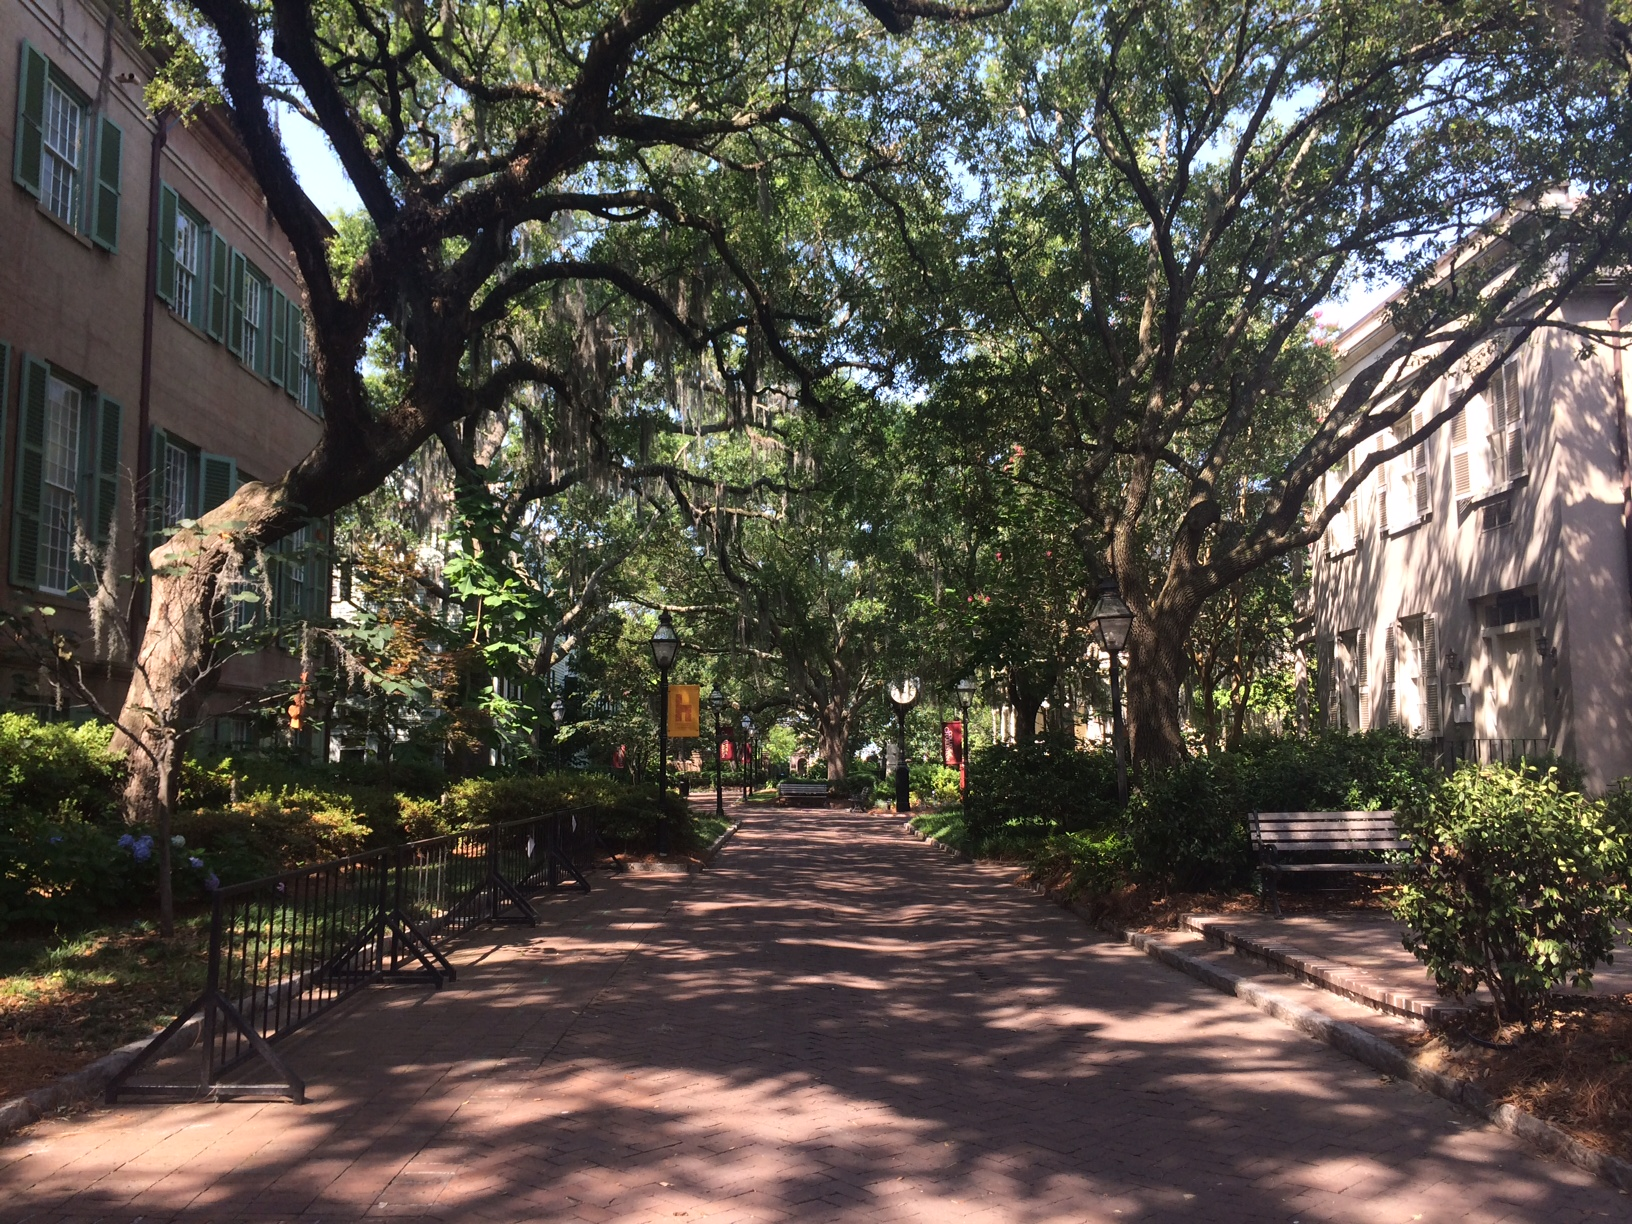 The College of Charleston campus, taken during our visit.